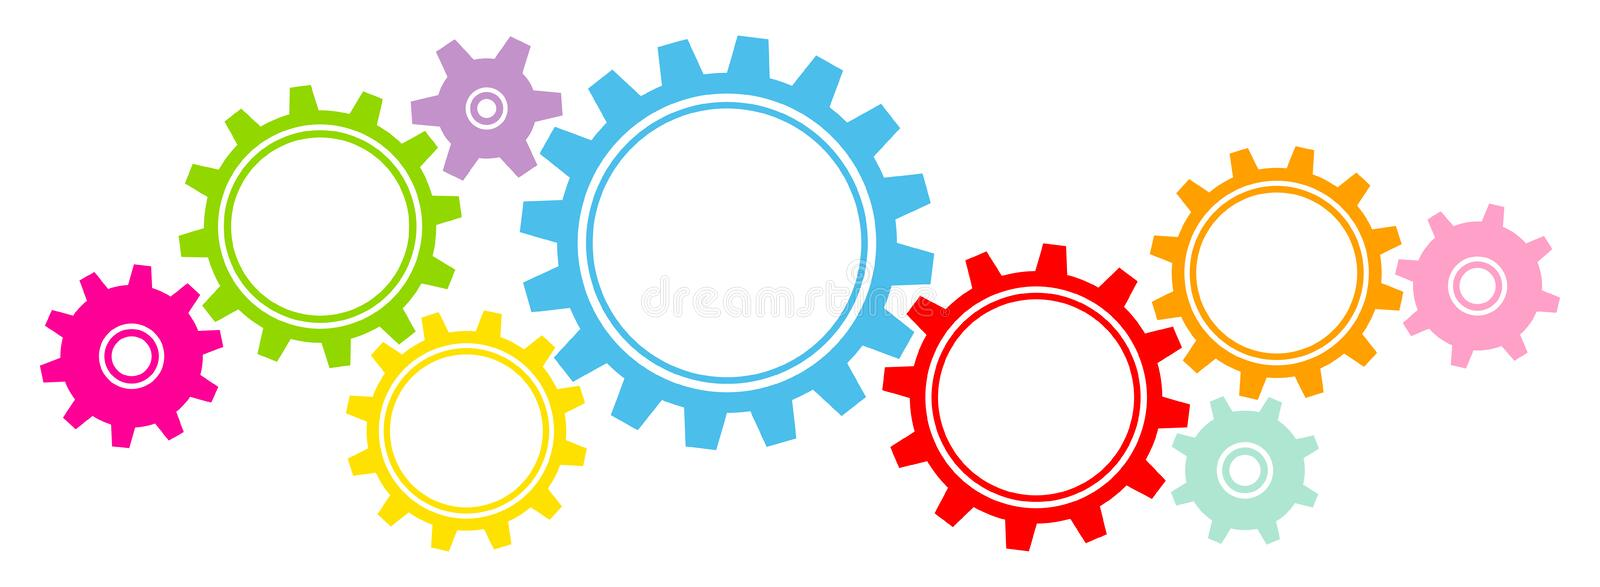 Nine Big And Little Graphic Gears Border Colors Horizontal stock illustration